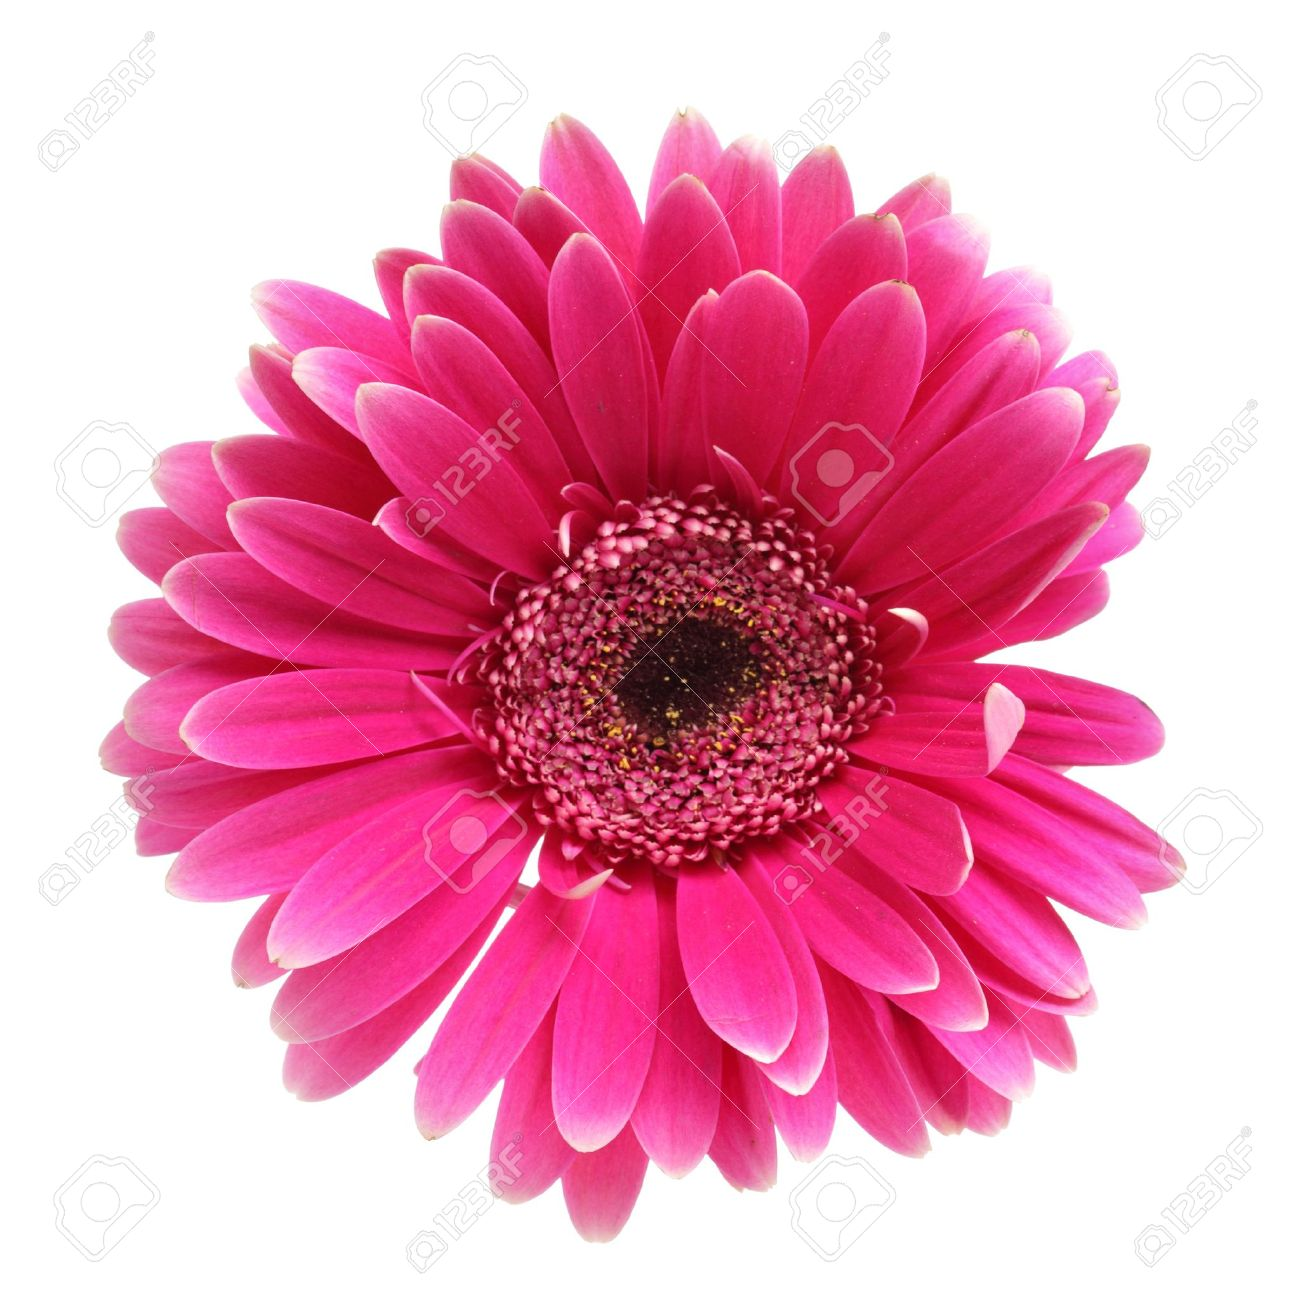 Pink daisy flower isolated over white background stock photo pink daisy flower isolated over white background stock photo 4617711 mightylinksfo